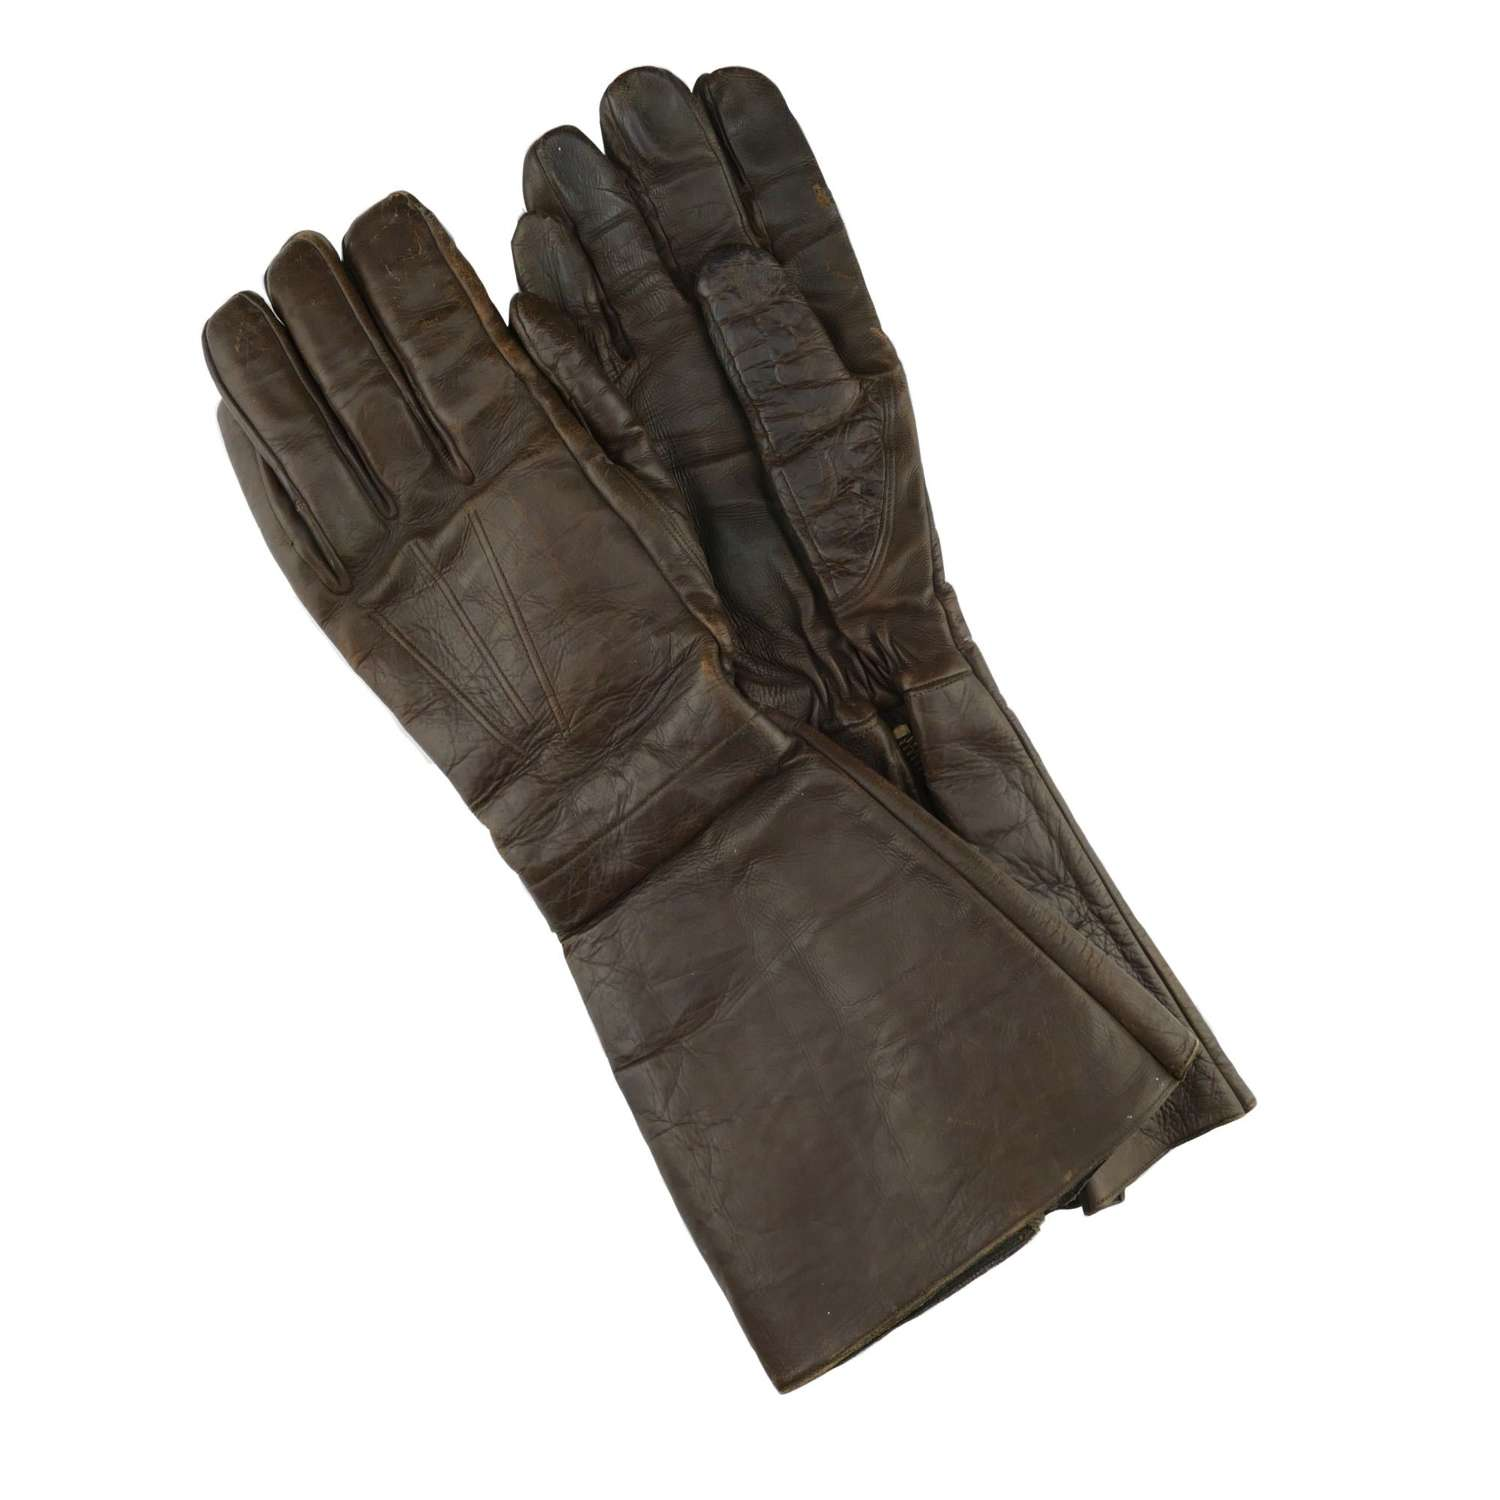 RAAF / RAF 1933 pattern flying gauntlets